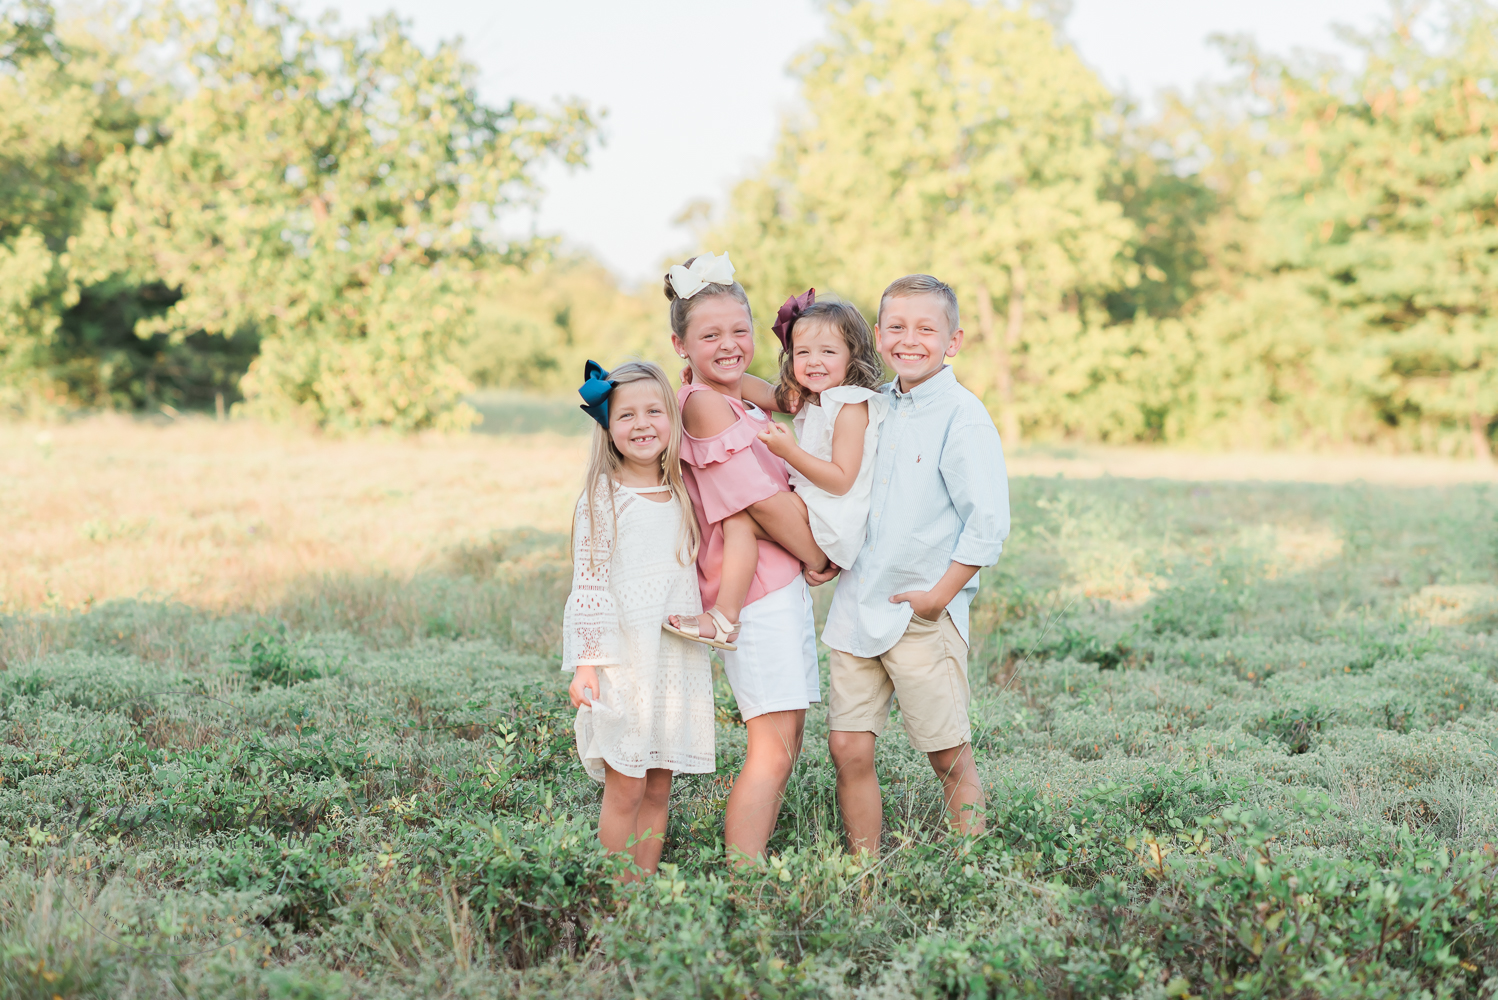 Natalie Imhoff Photography - Frisco Family Photography - Family Photos - Frisco Texas  - 2017 - Web-34.JPG